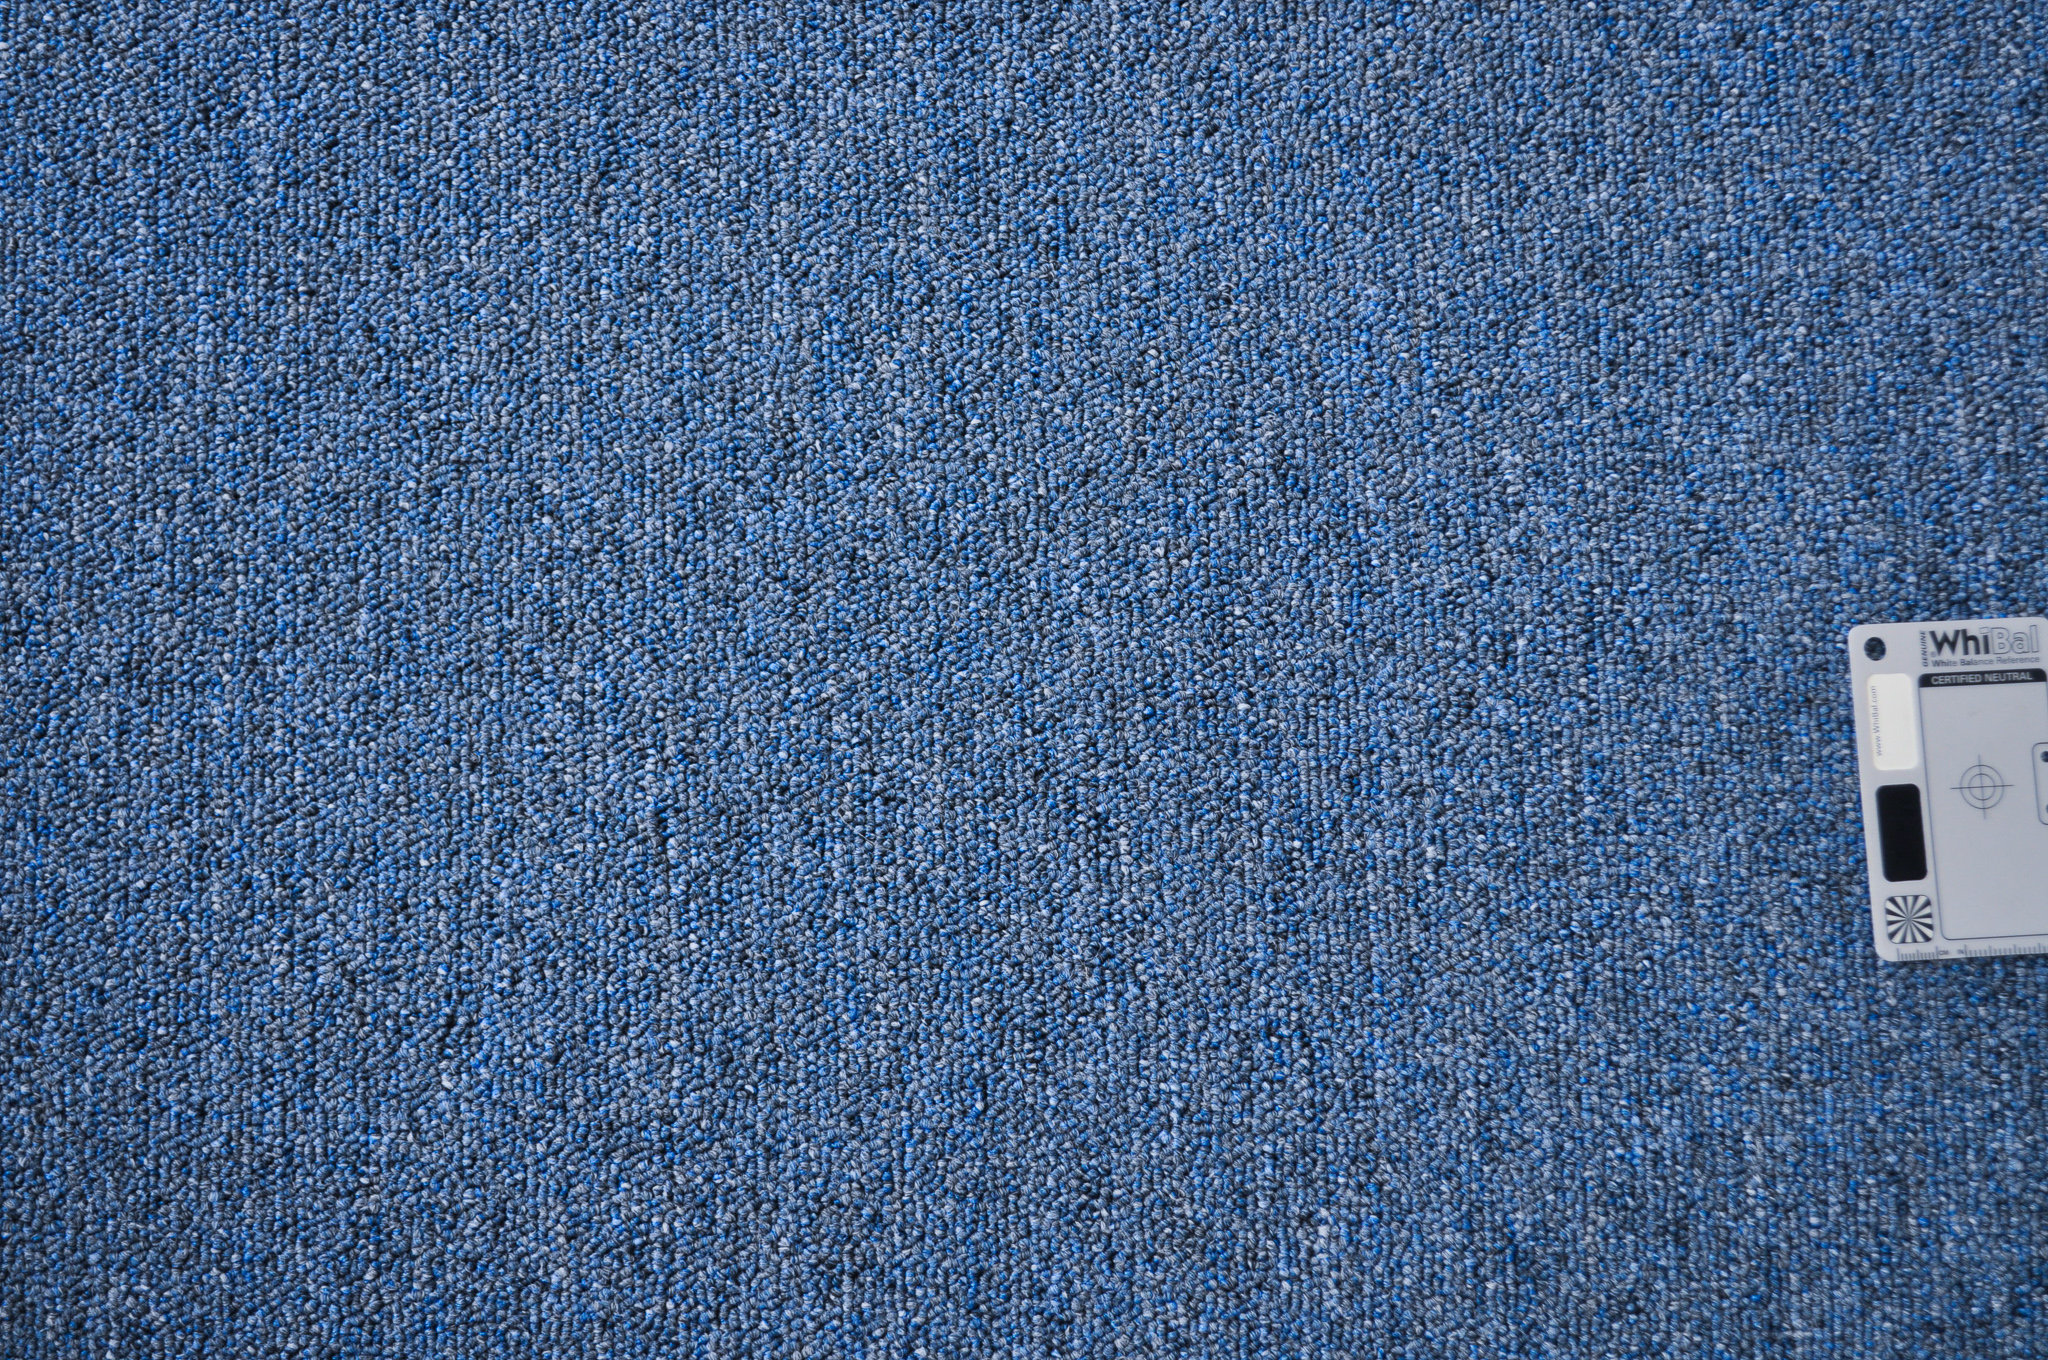 a sample of a blue colored polypropelene loop pile carpet.